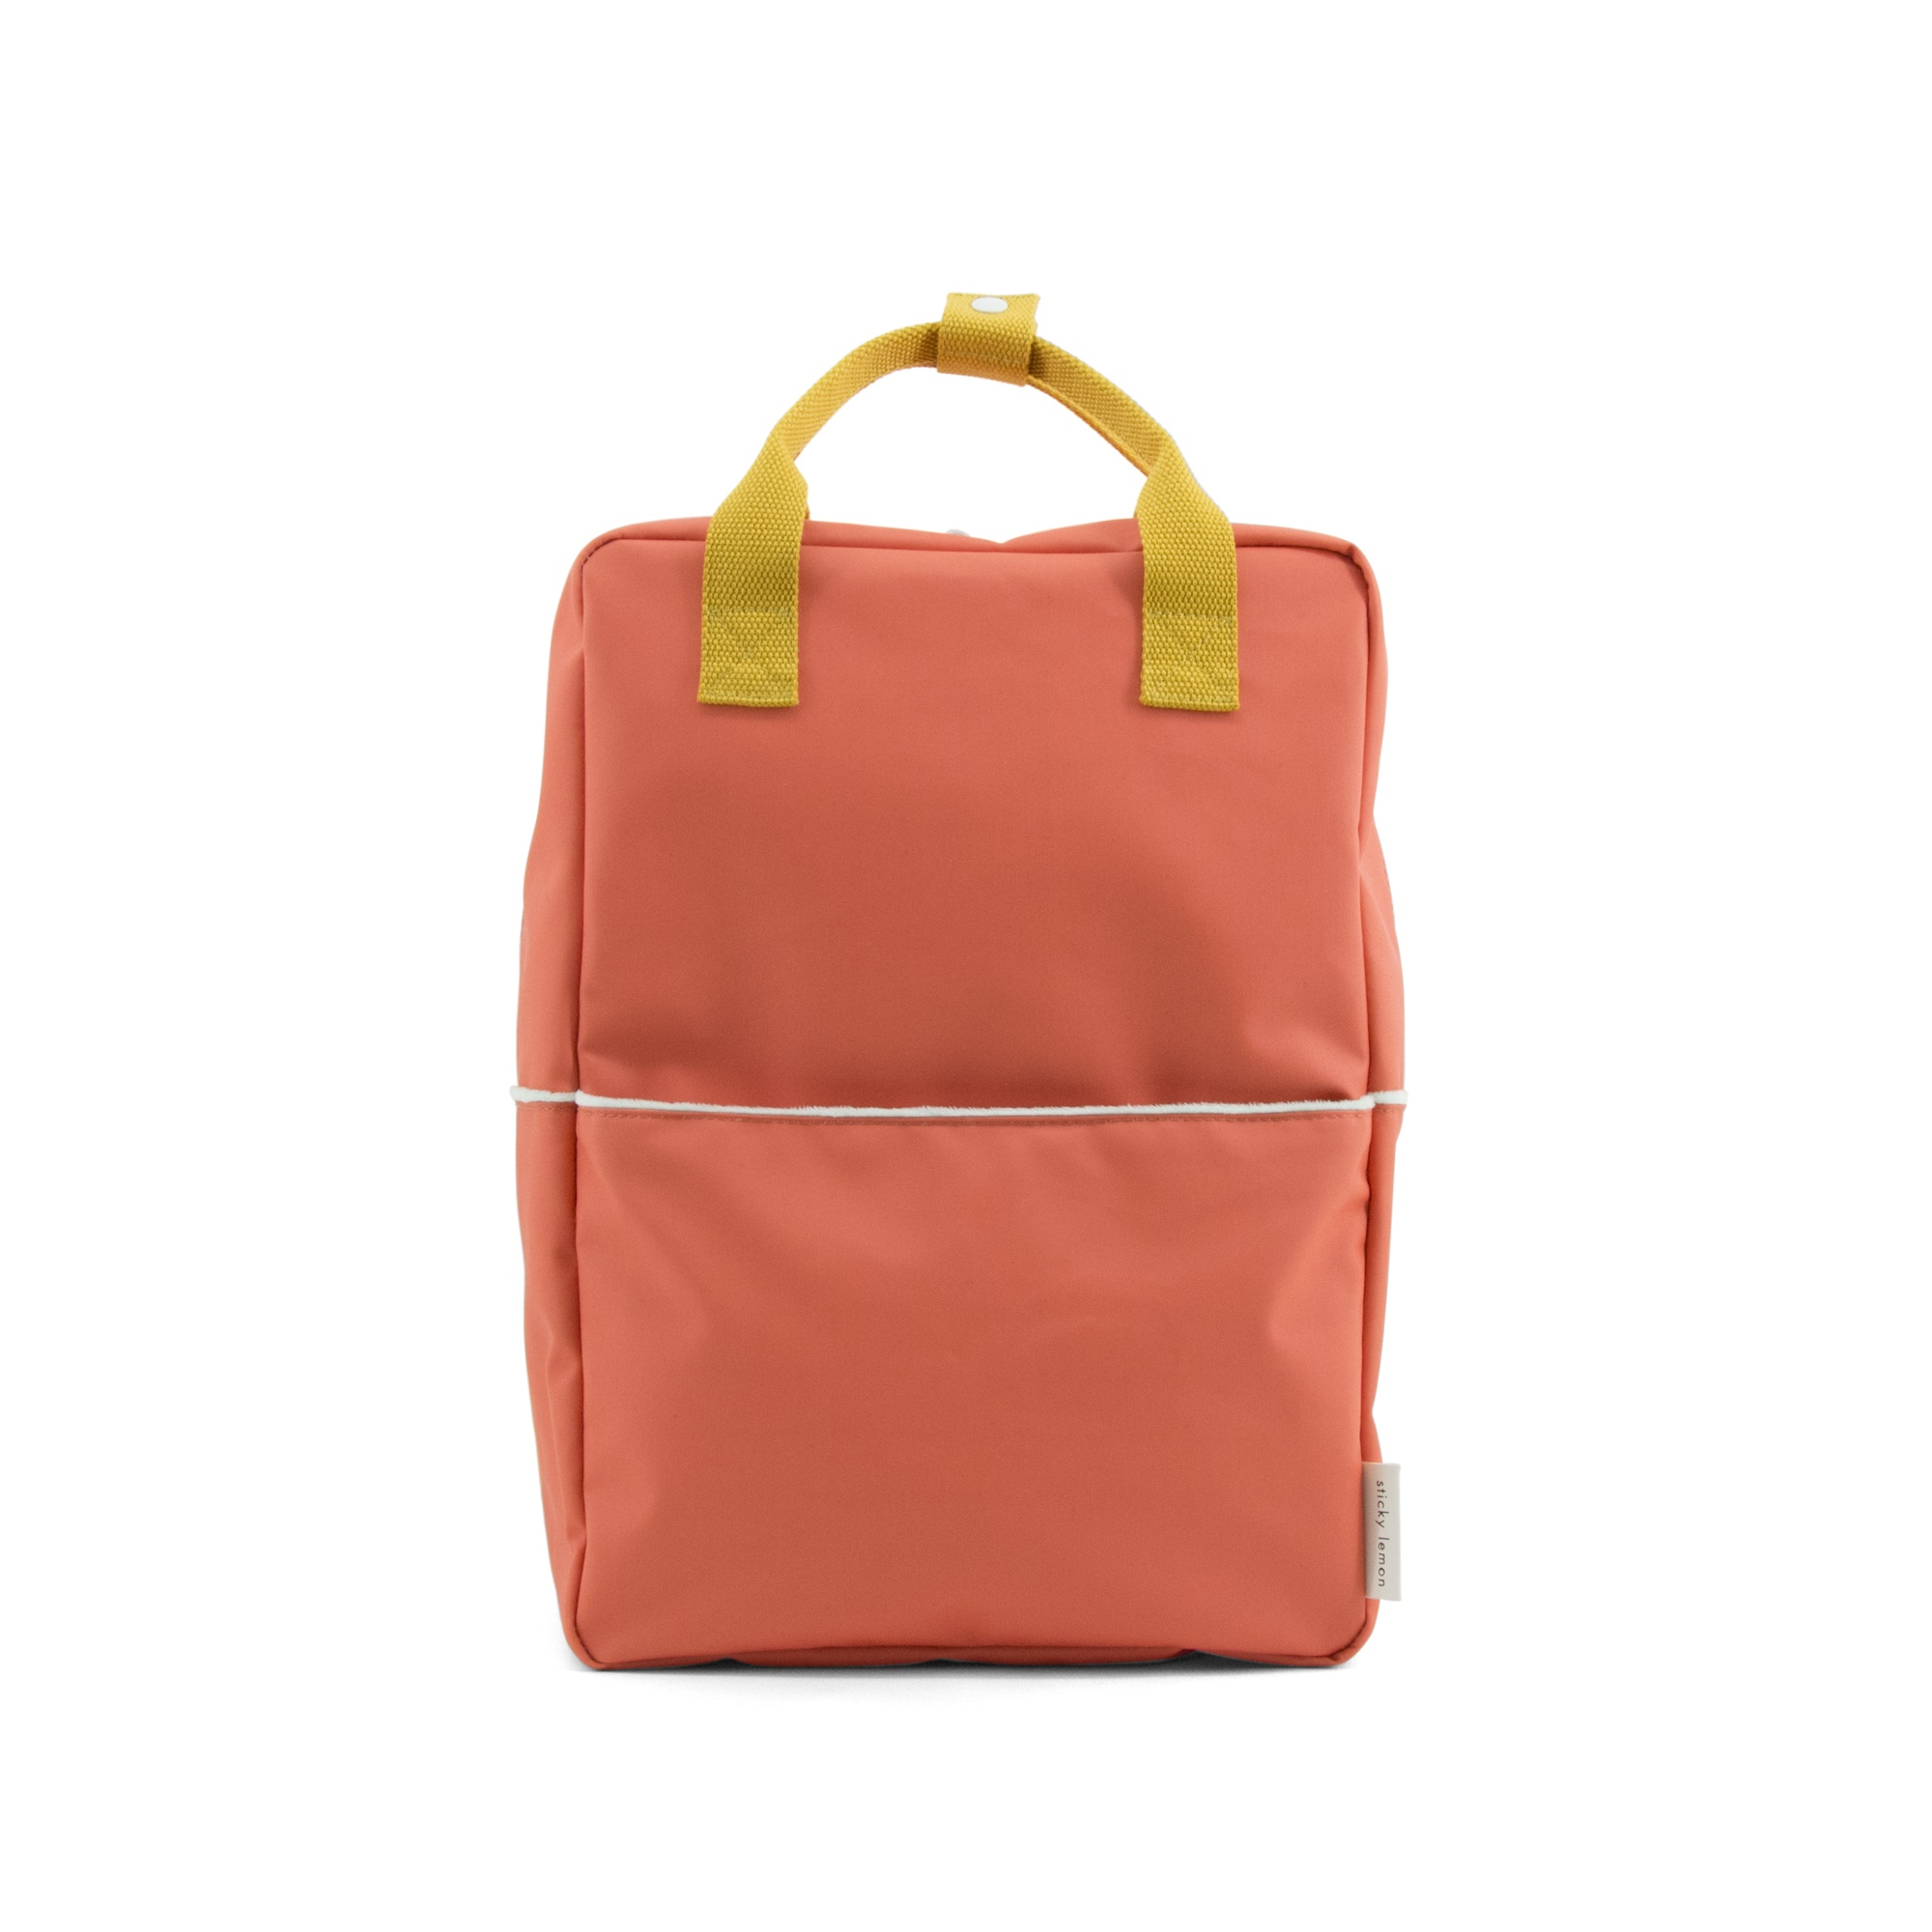 Backpack teddy large sporty red caramel fudge